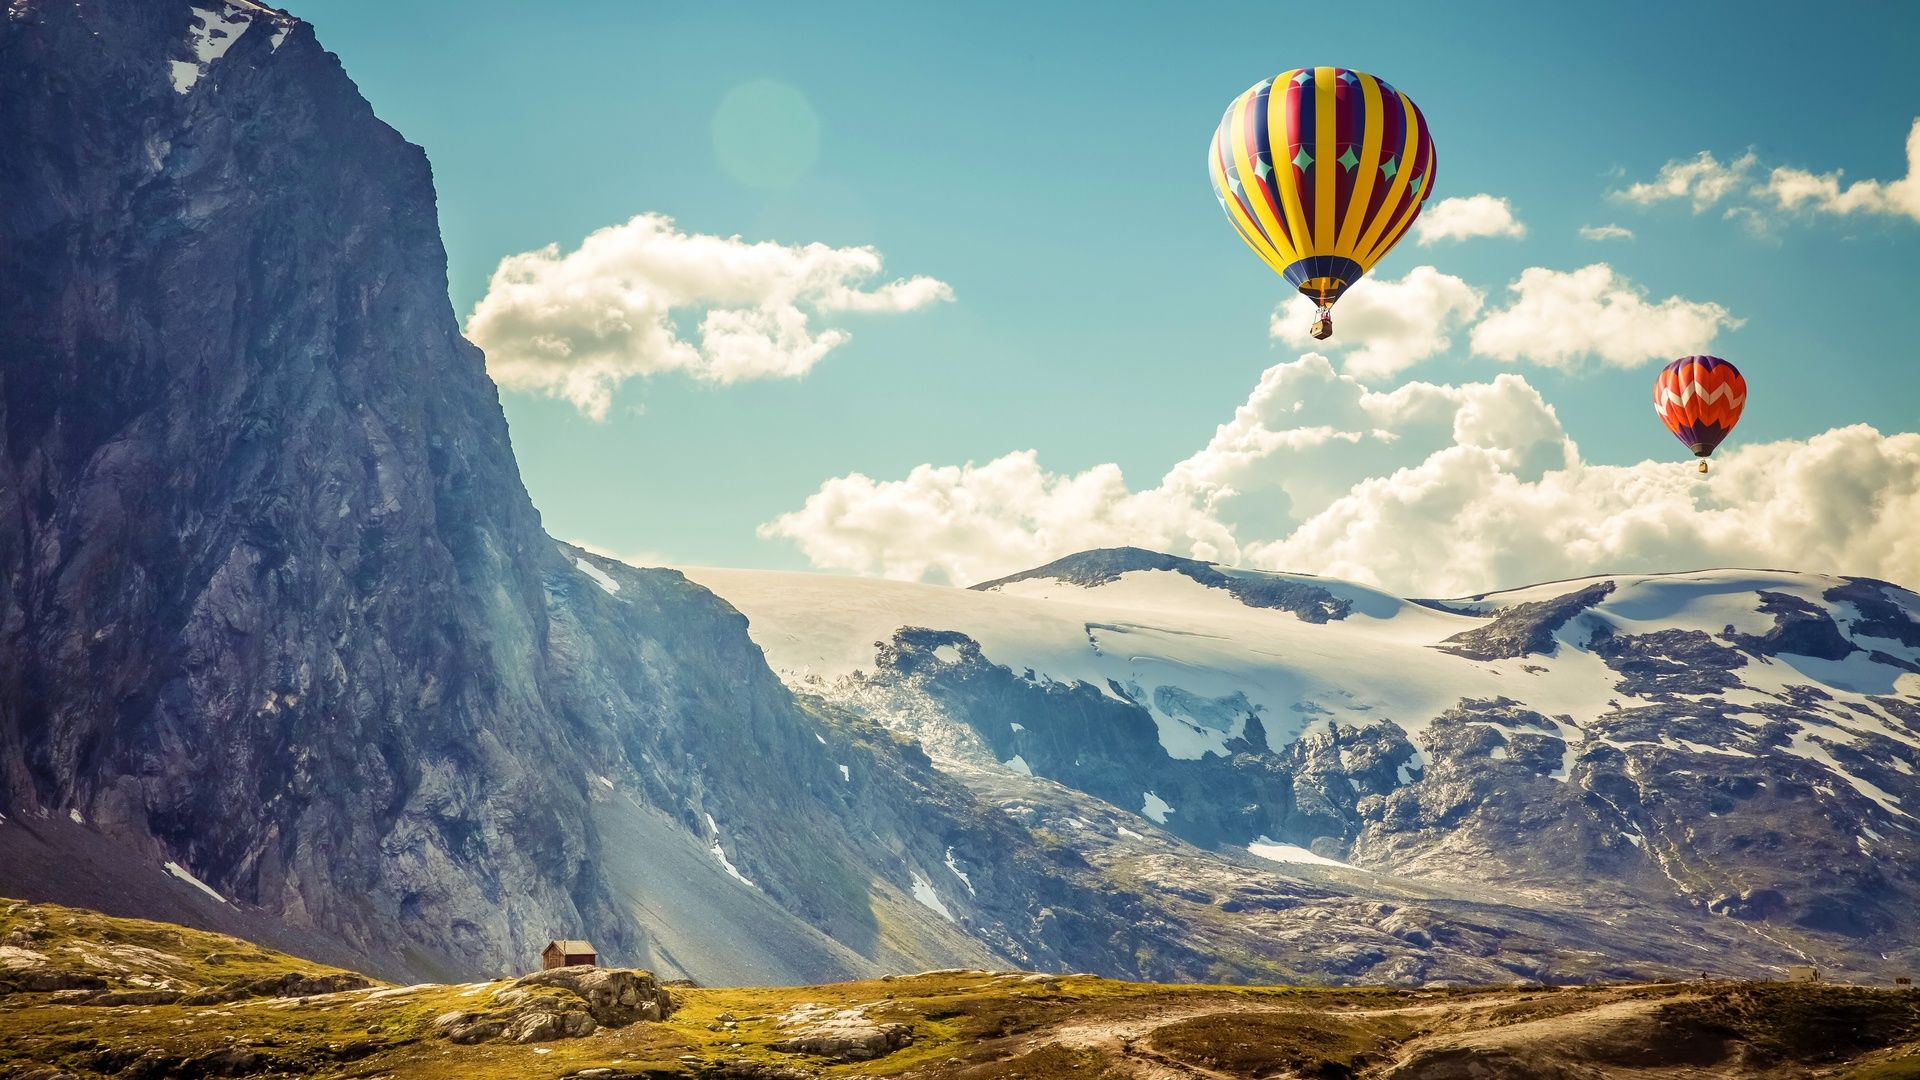 Photography With Balloon In The Mountains